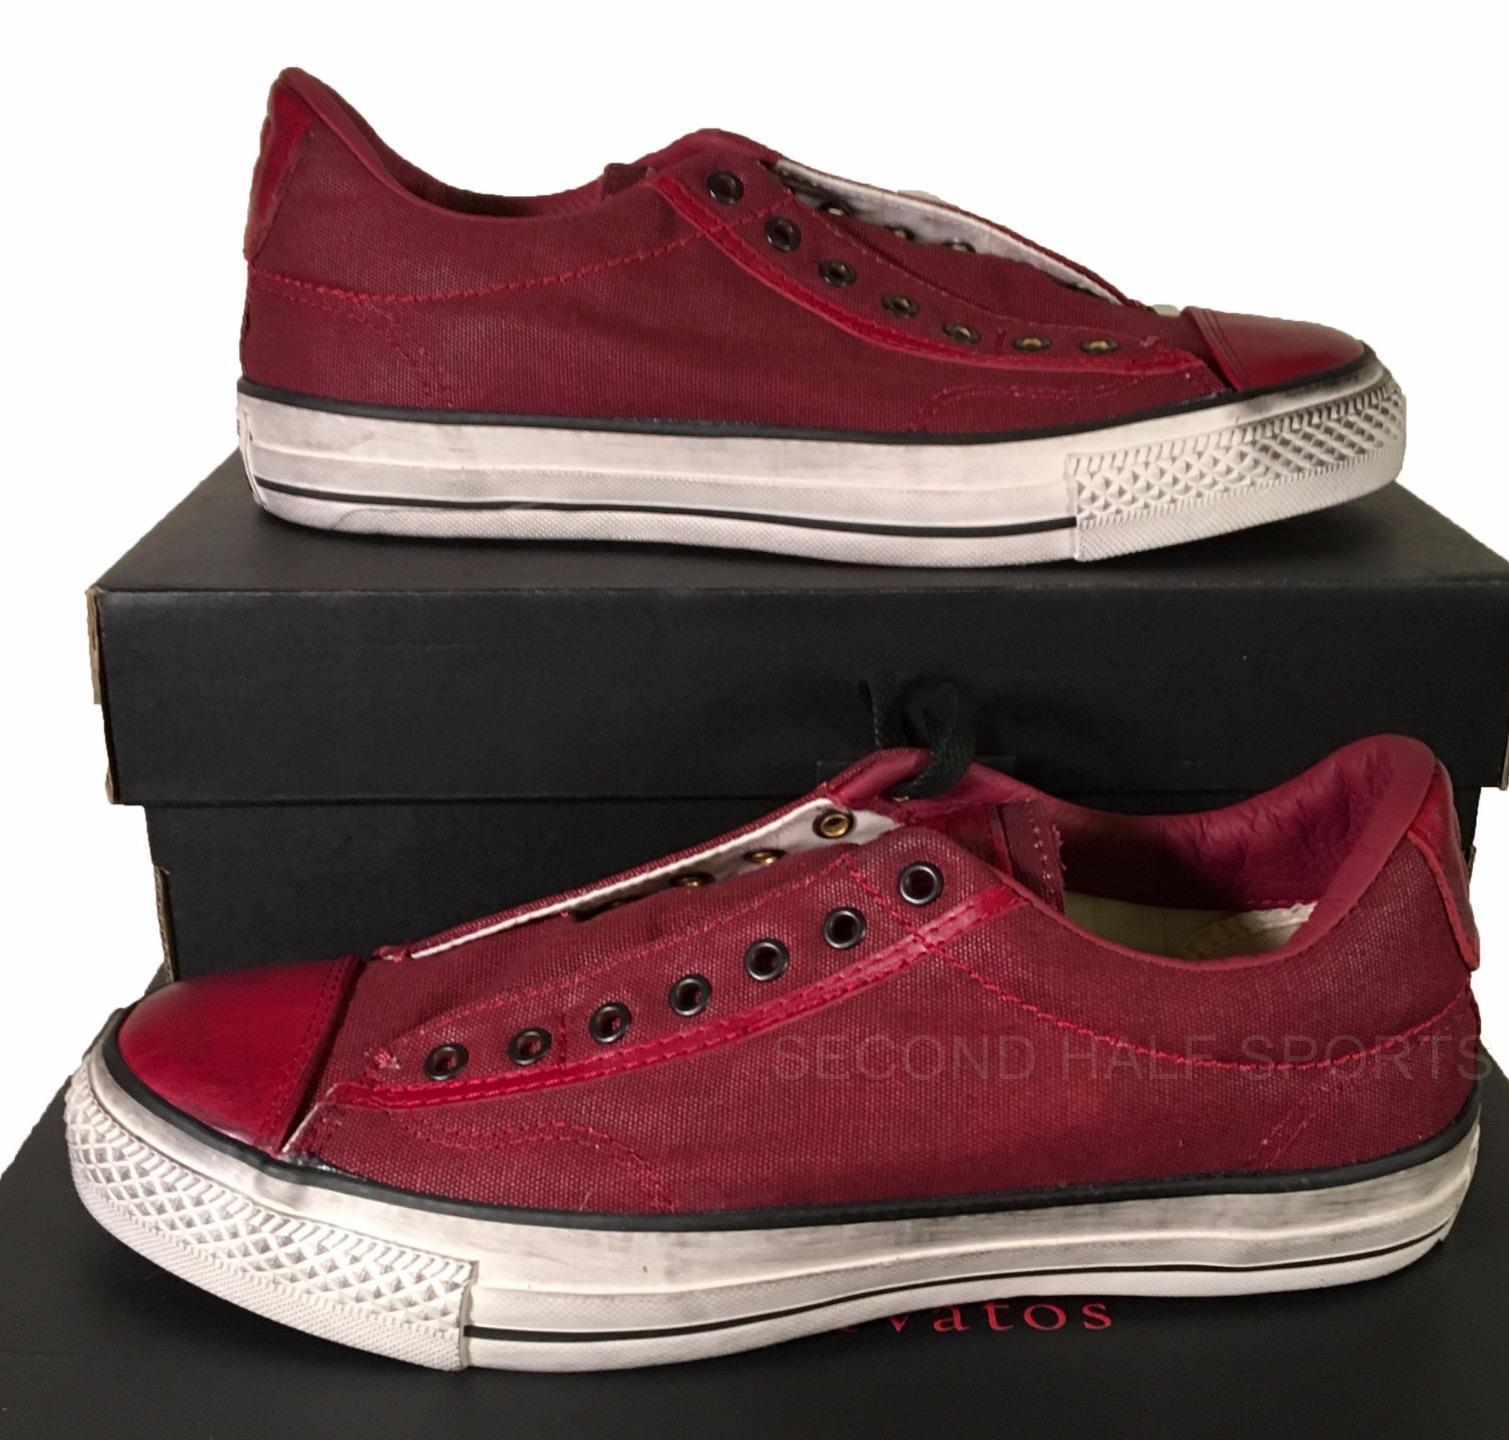 f1ce2131a614 S l1600. S l1600. Previous. Converse John Varvatos Burnished Canvas Chuck  Taylor Slip on Sneaker ...